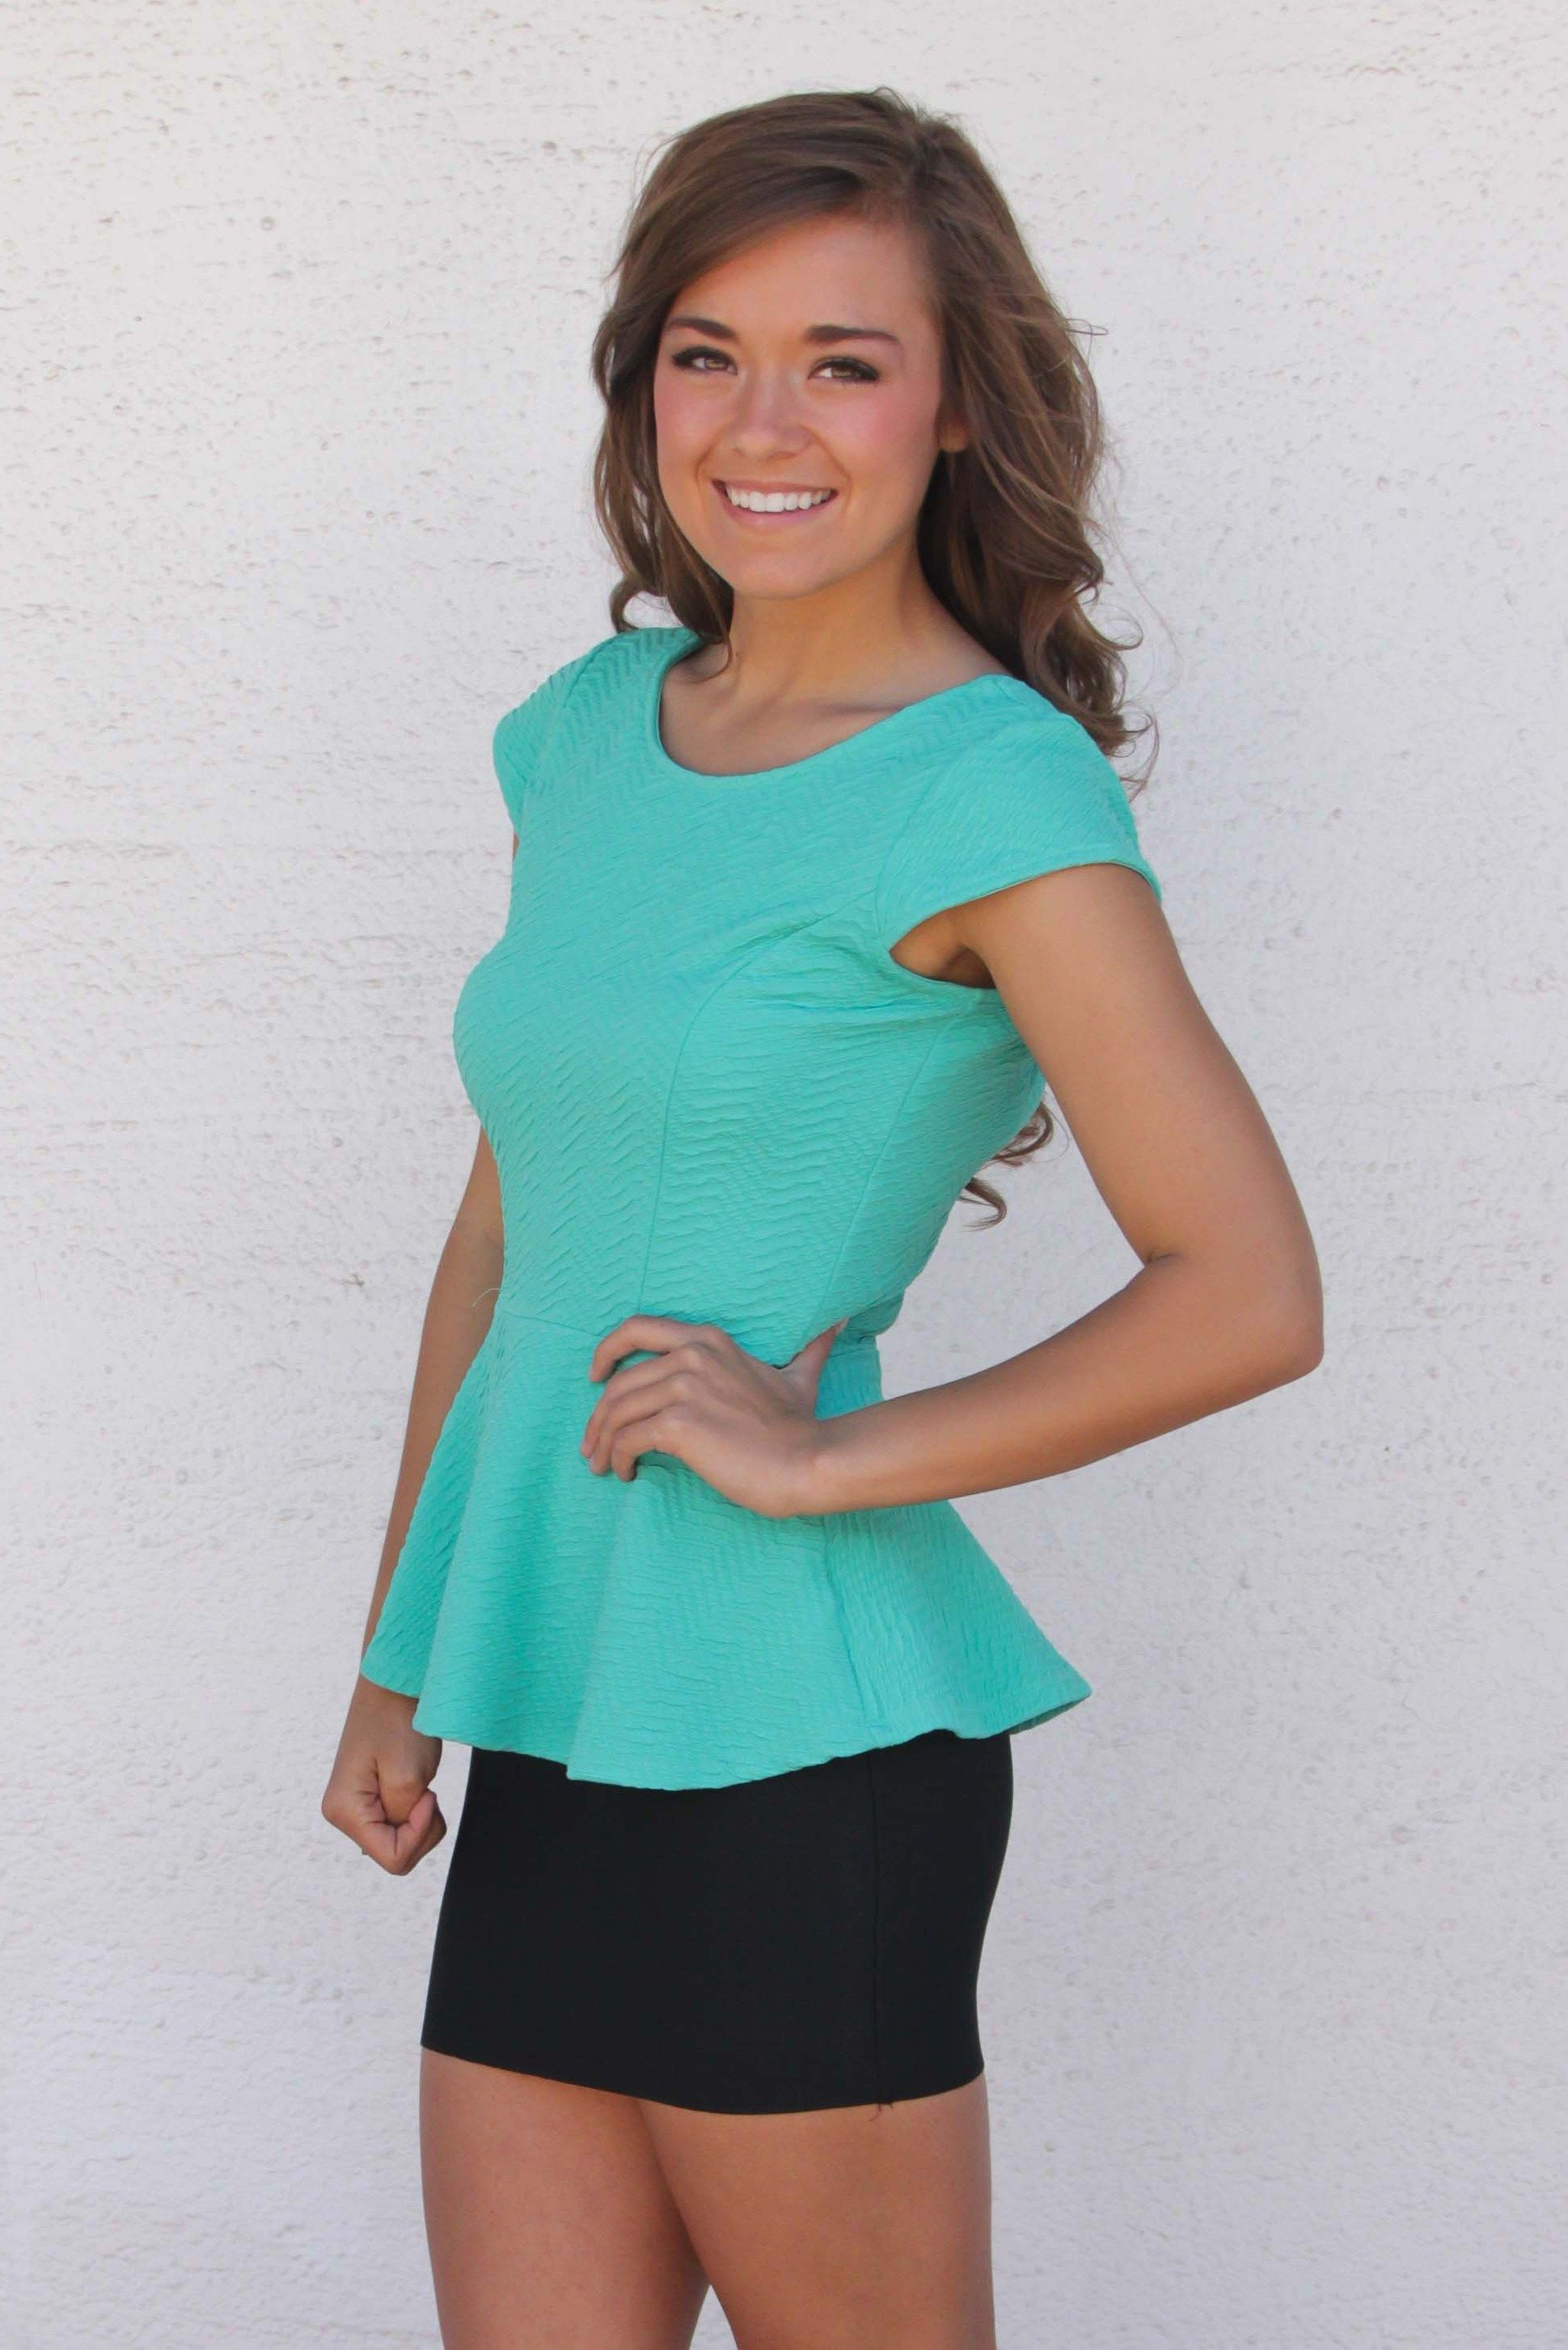 Yep, another ADORABLE peplum top that is soon to be gone at blushnorman.com